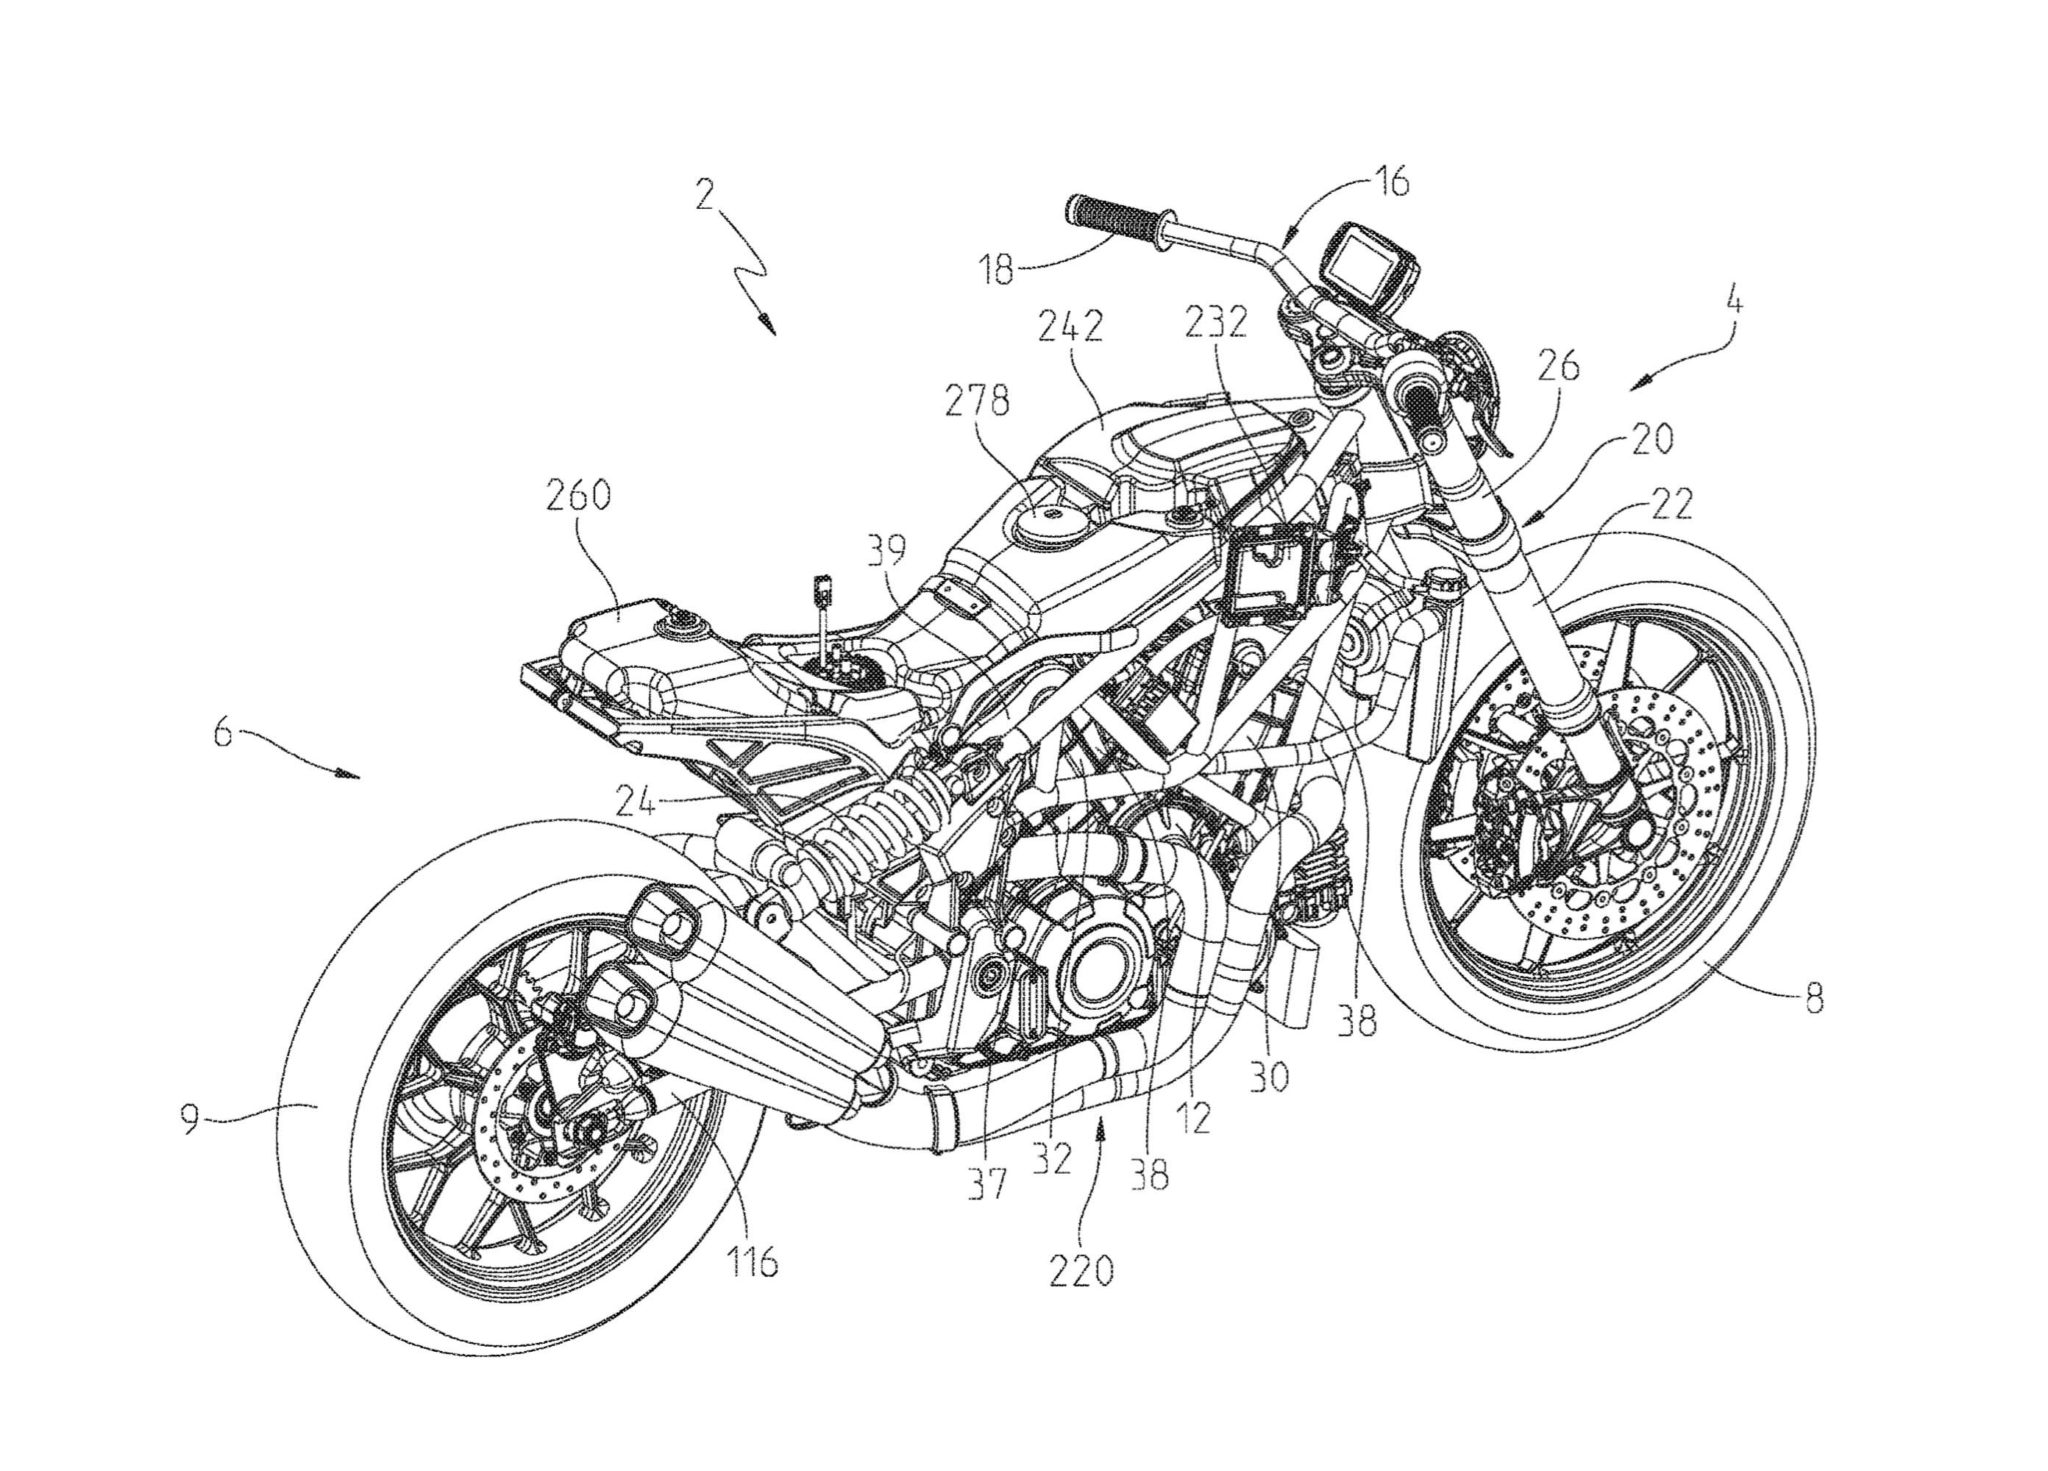 Patent application shows details of the Indian FTR1200 street tracker